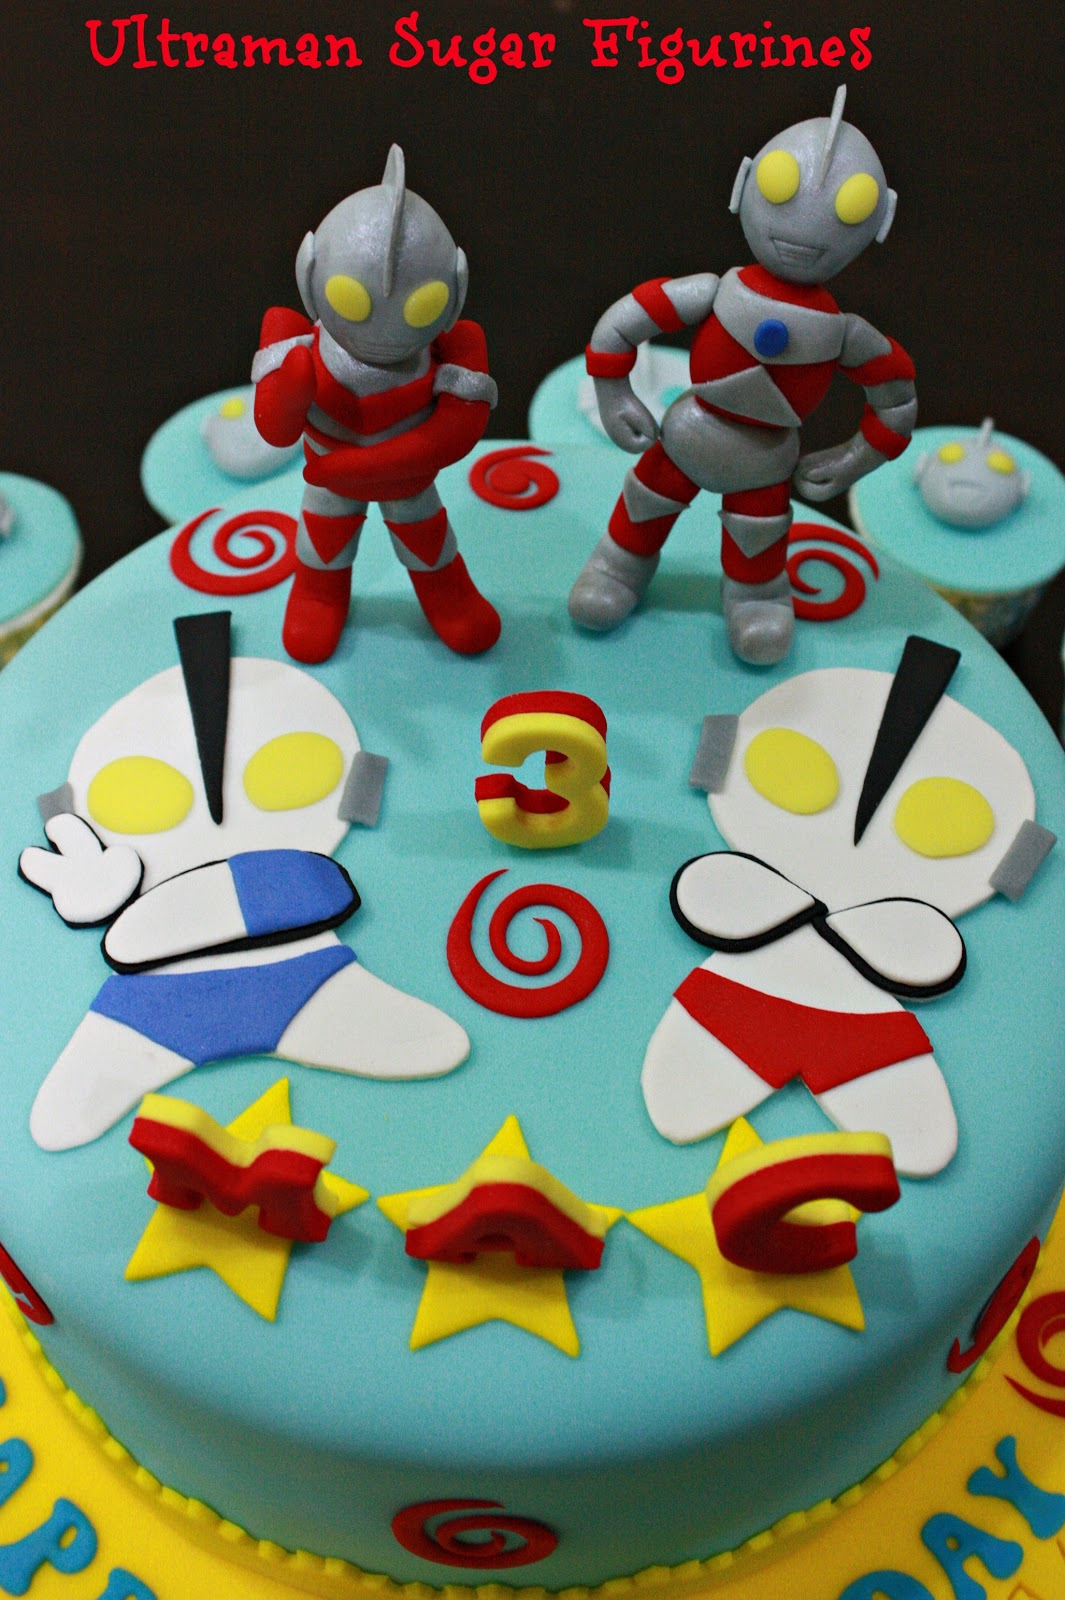 Shenys Homemade Treats Ultraman Themed Cake and Cupcakes